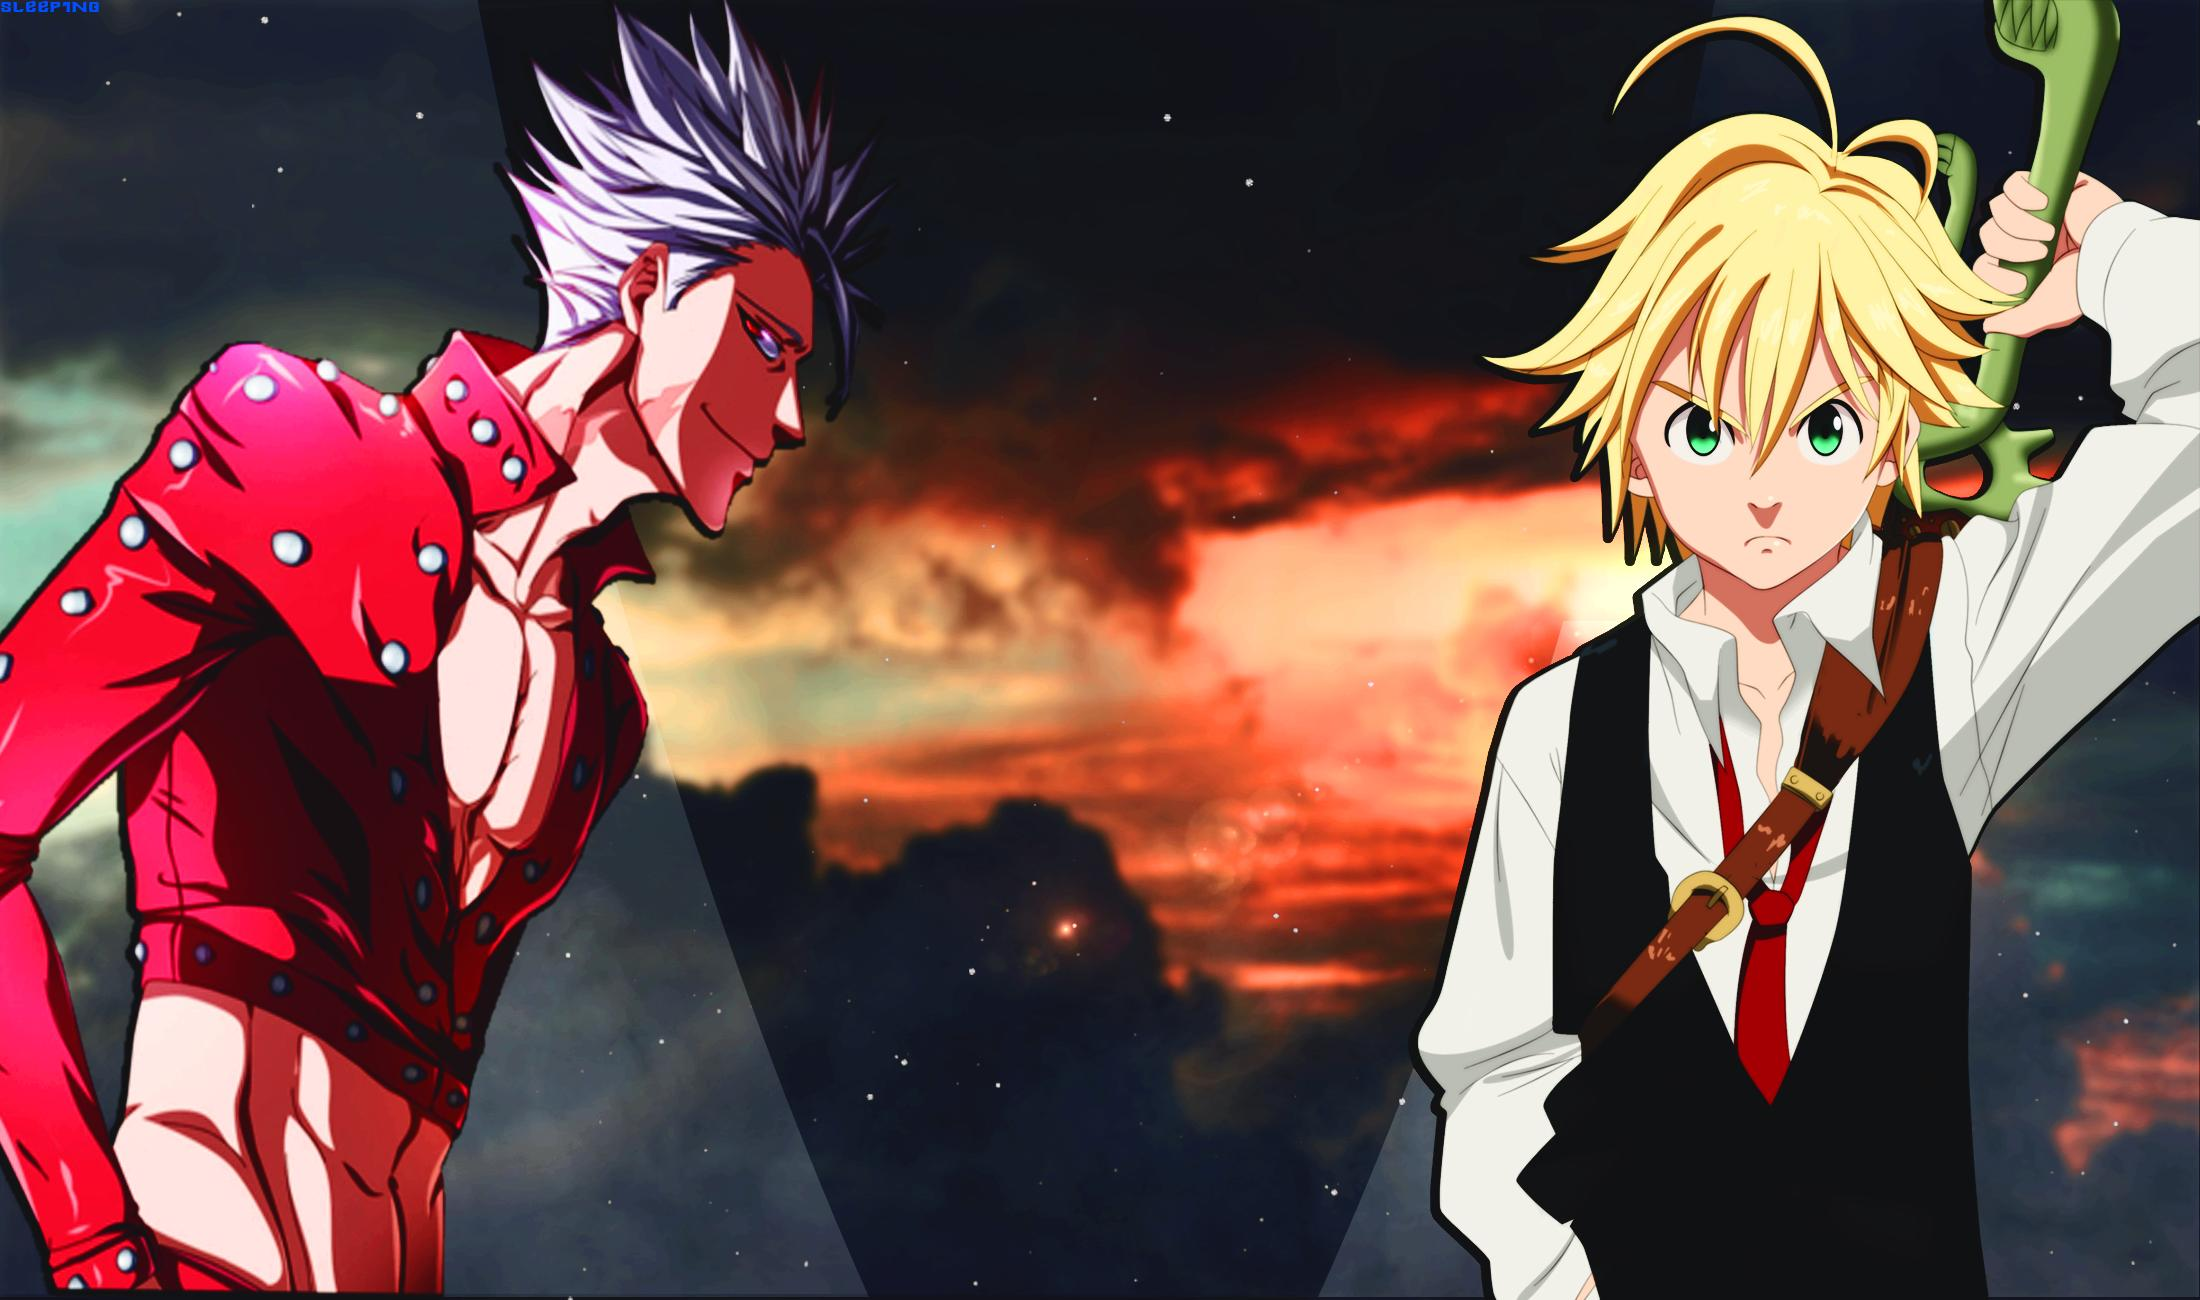 Wallpaper Of Anime Ban Meliodas The Seven Deadly Sins